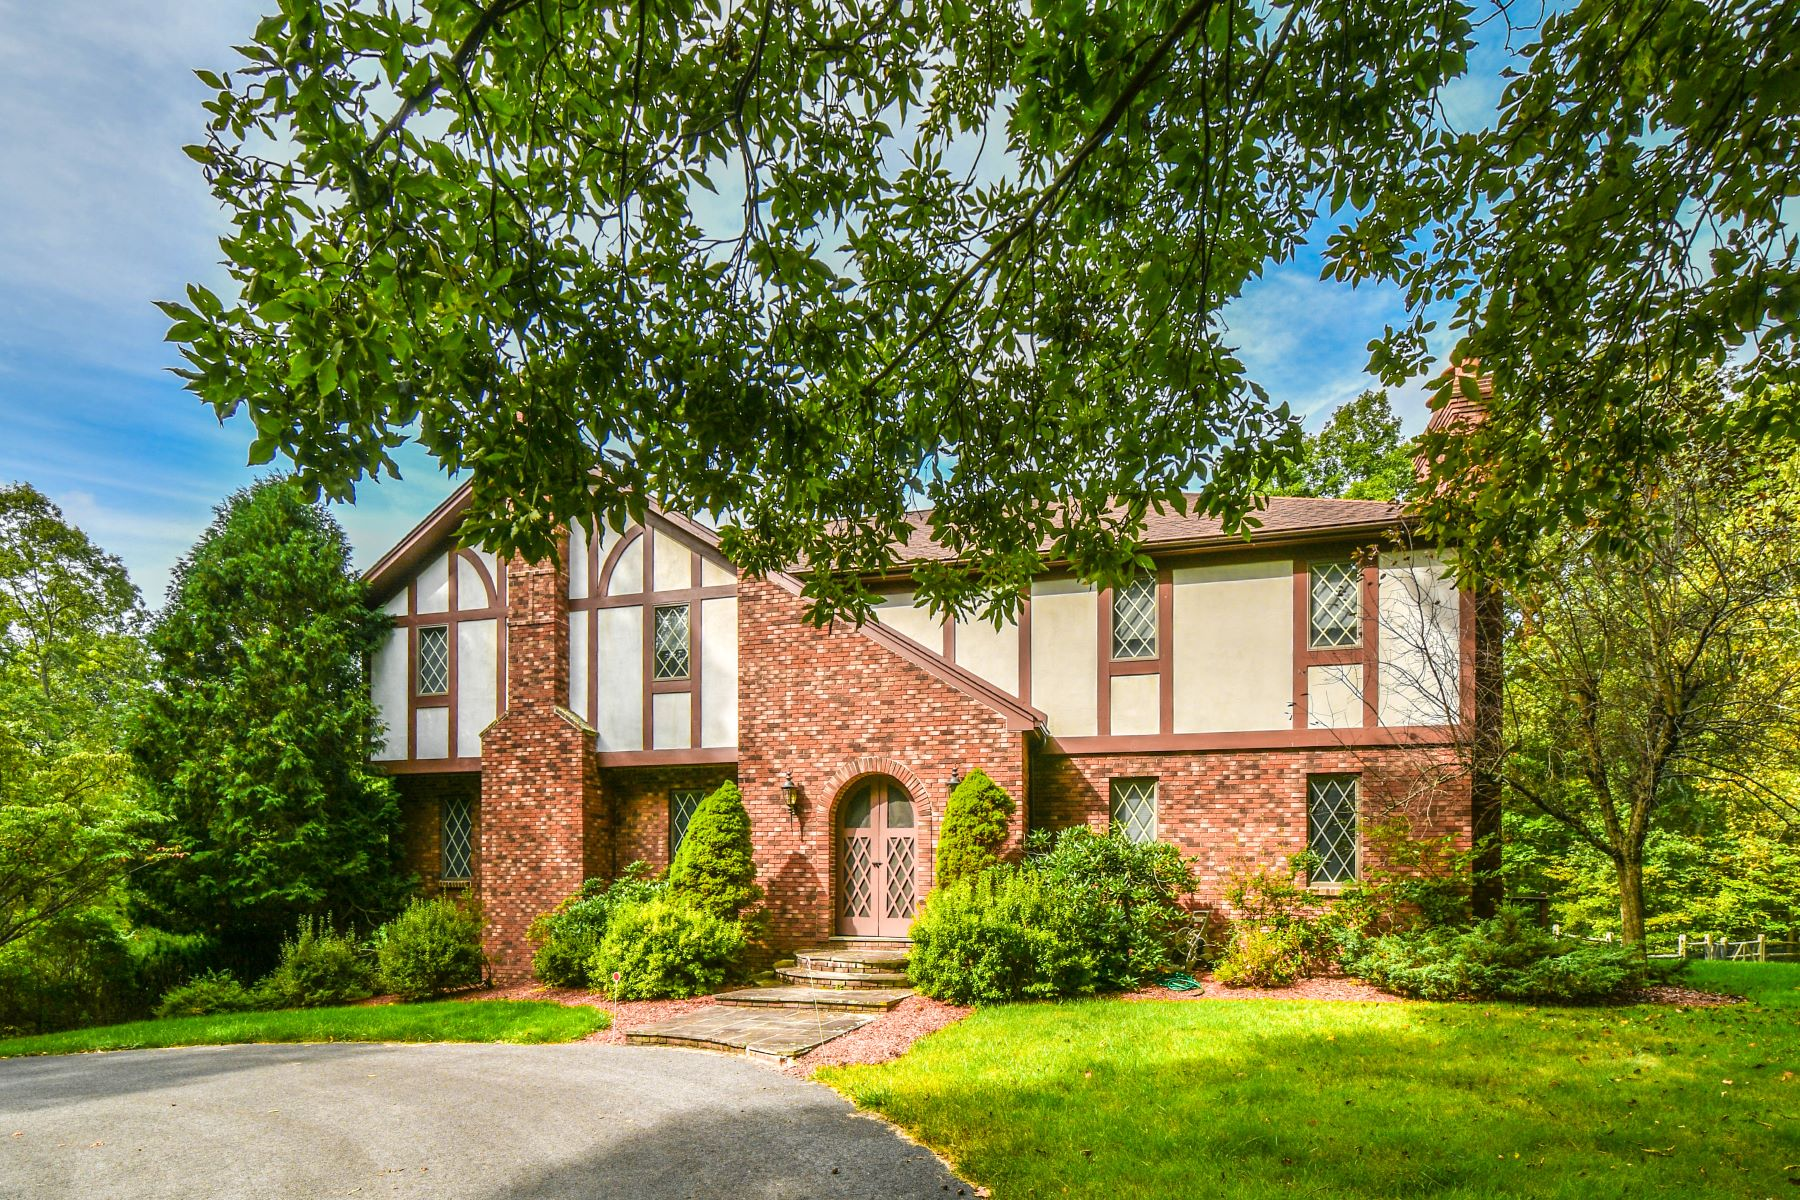 Single Family Home for Sale at Stately Tudor on Fourteen Tranquil Acres 26 Rockledge Lane New Milford, Connecticut 06776 United States